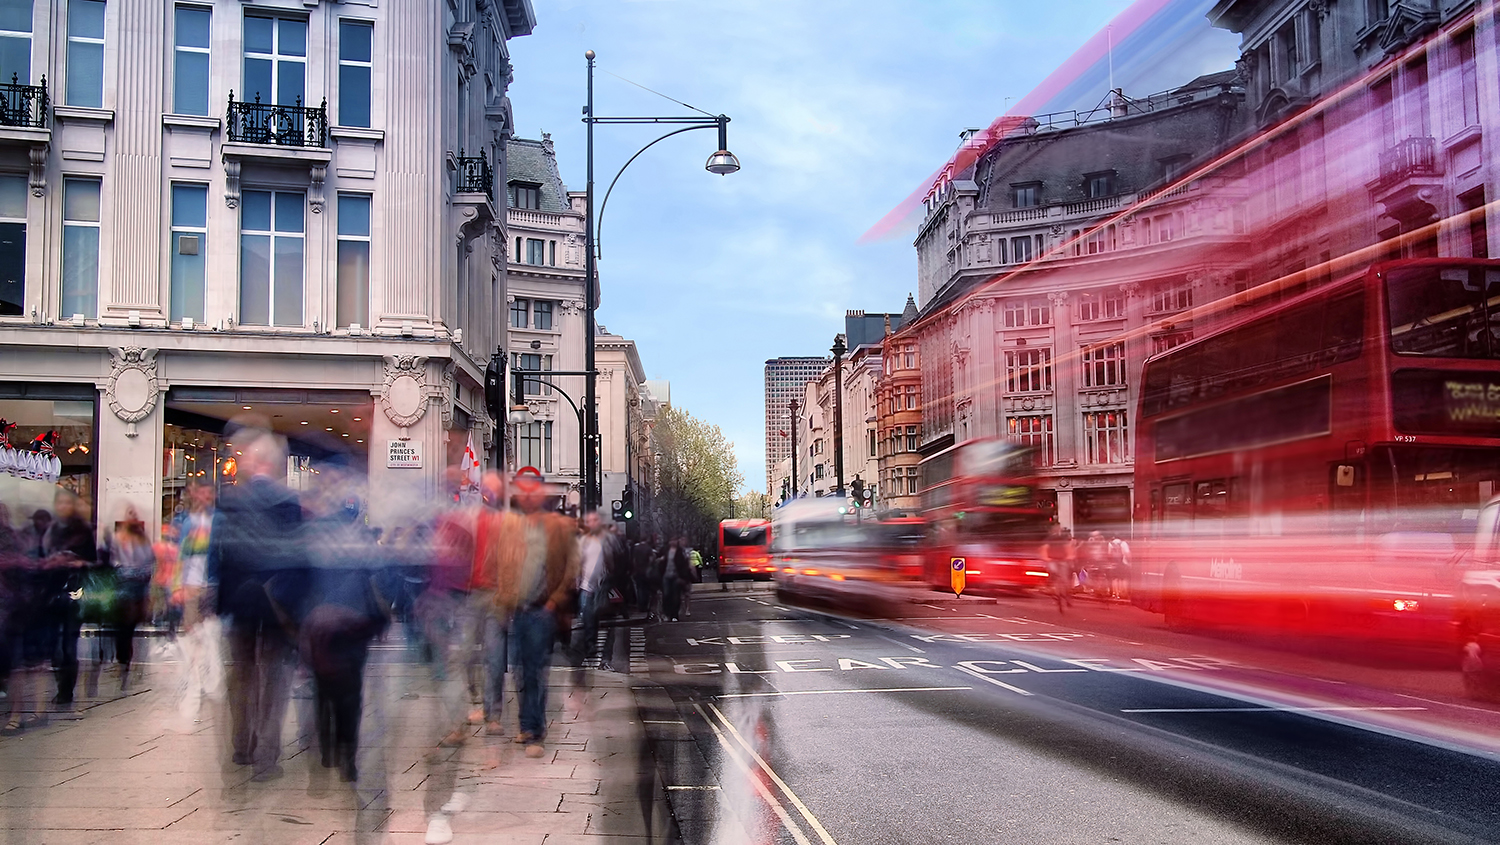 An image of Oxford Street, London